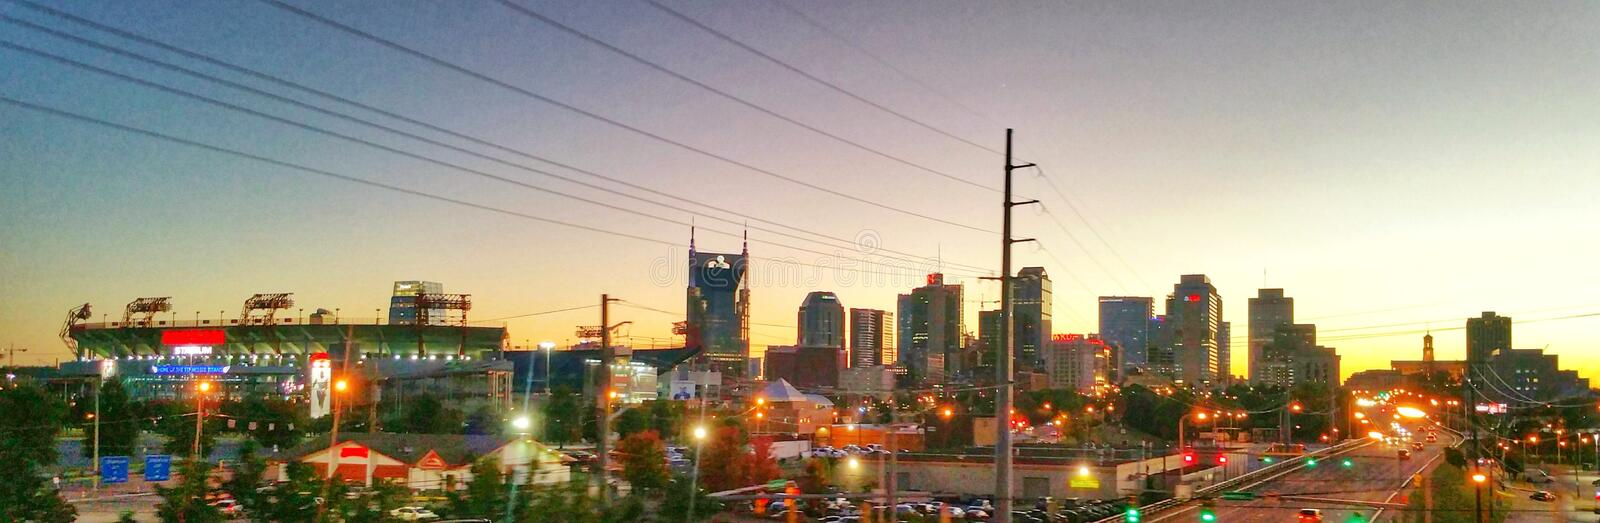 Nashville, Tennessee images stock